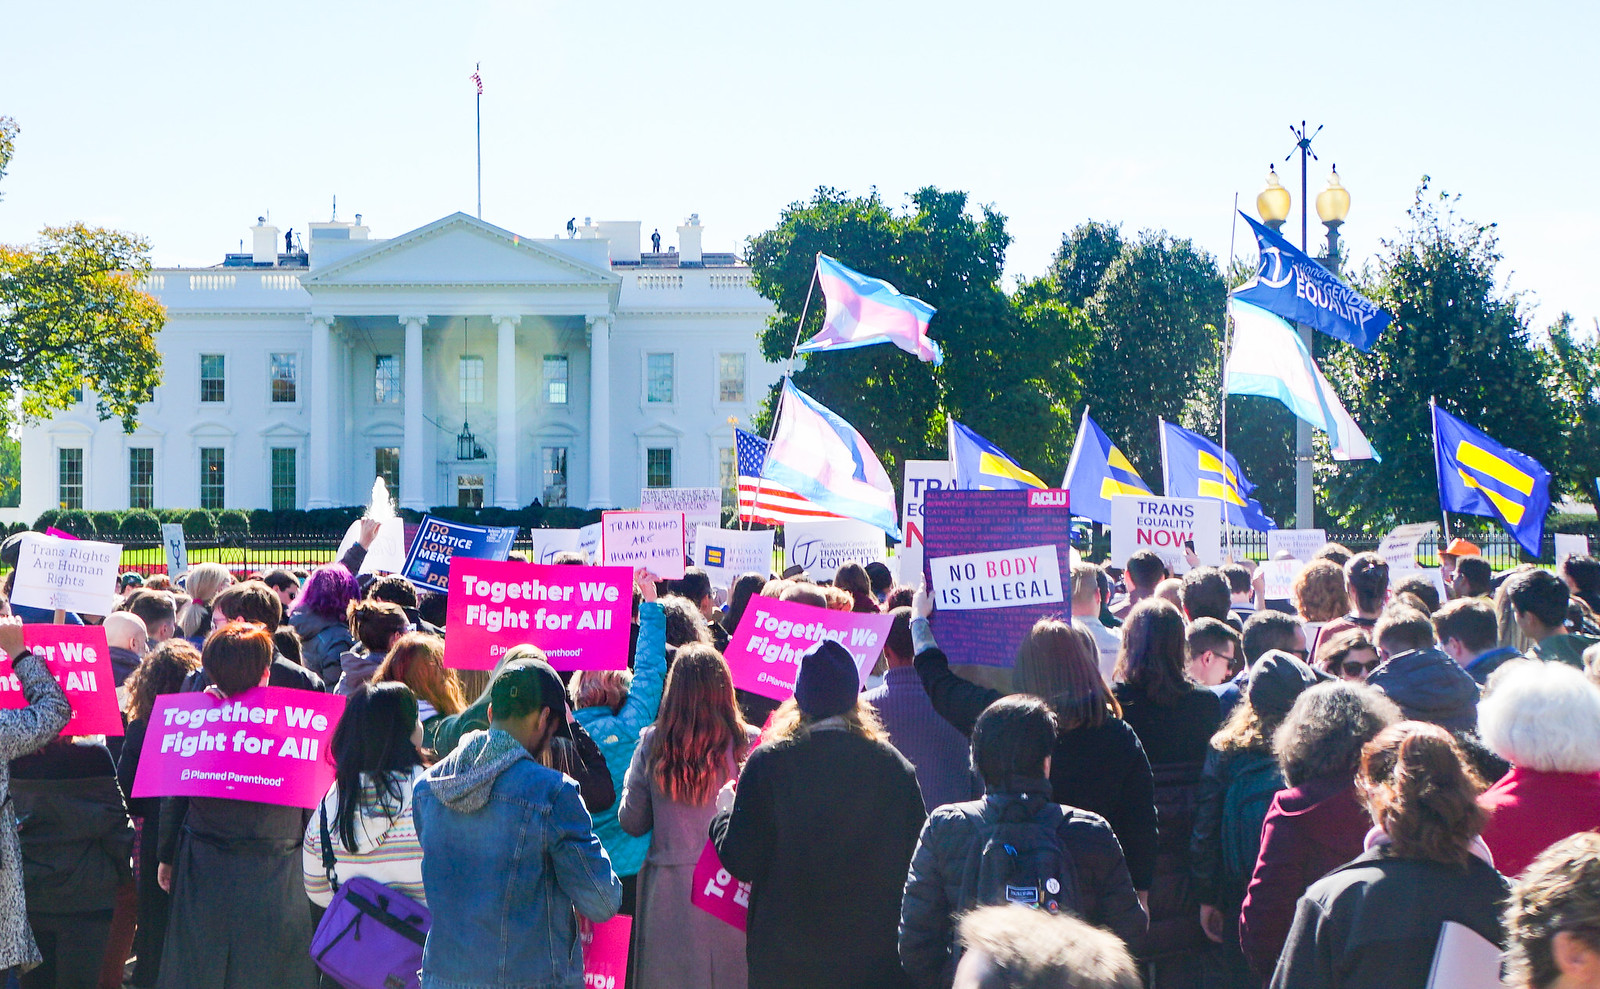 2018.10.22 We Won't Be Erased - Rally for Trans Rights, Washington, DC USA 06824